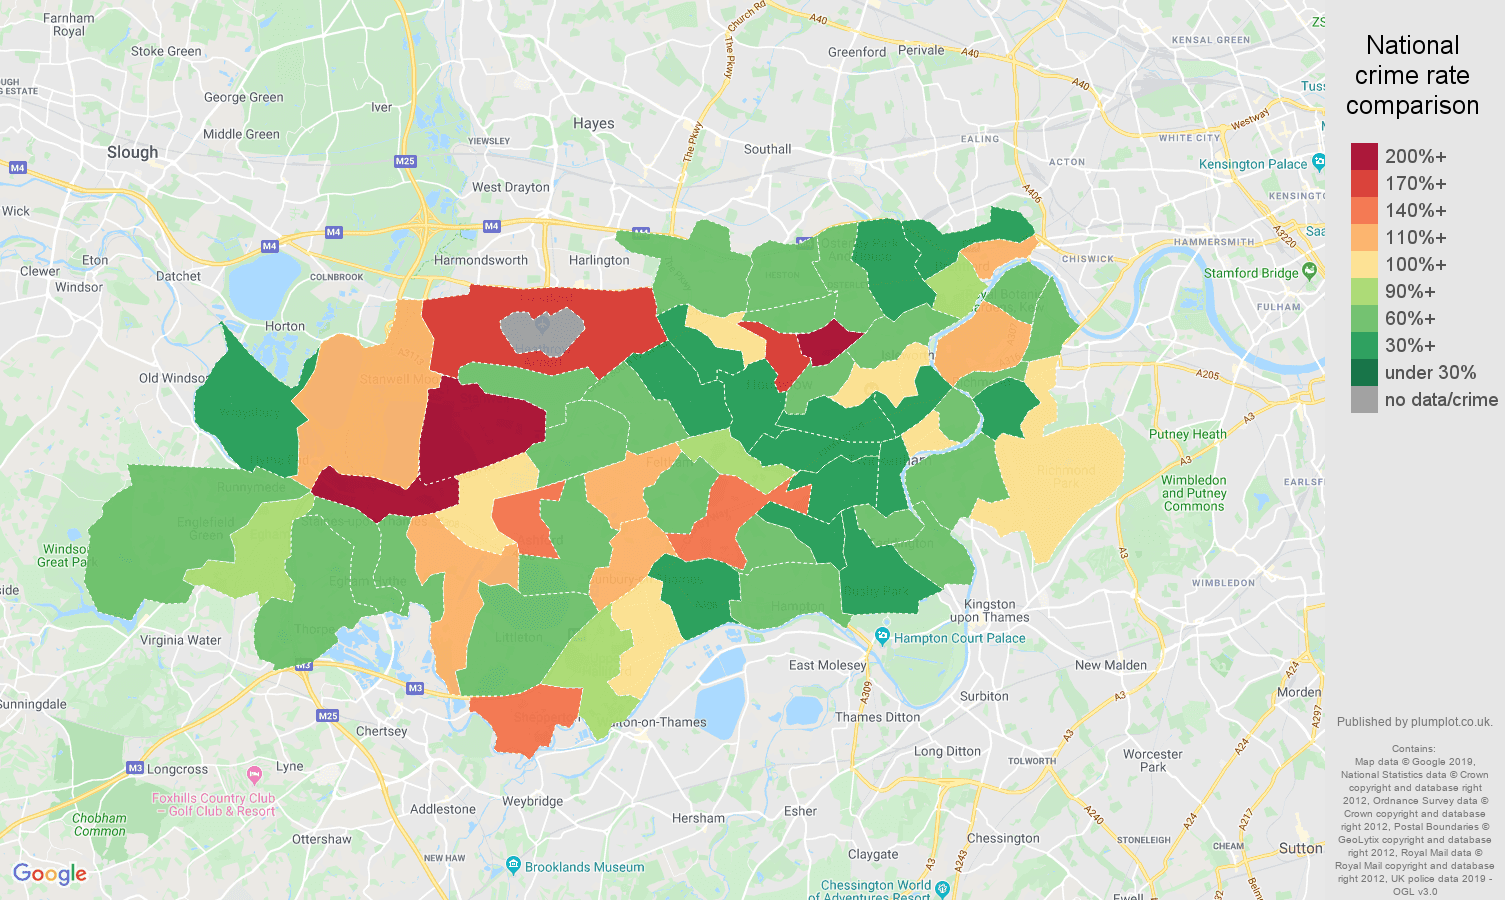 Twickenham public order crime rate comparison map